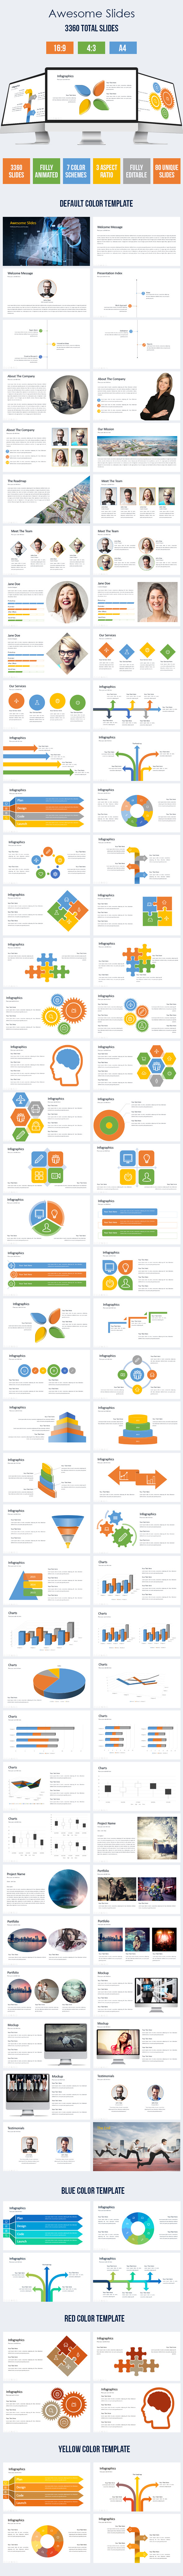 GraphicRiver Terrano Multipurpose Powerpoint Presentation Template 10458755